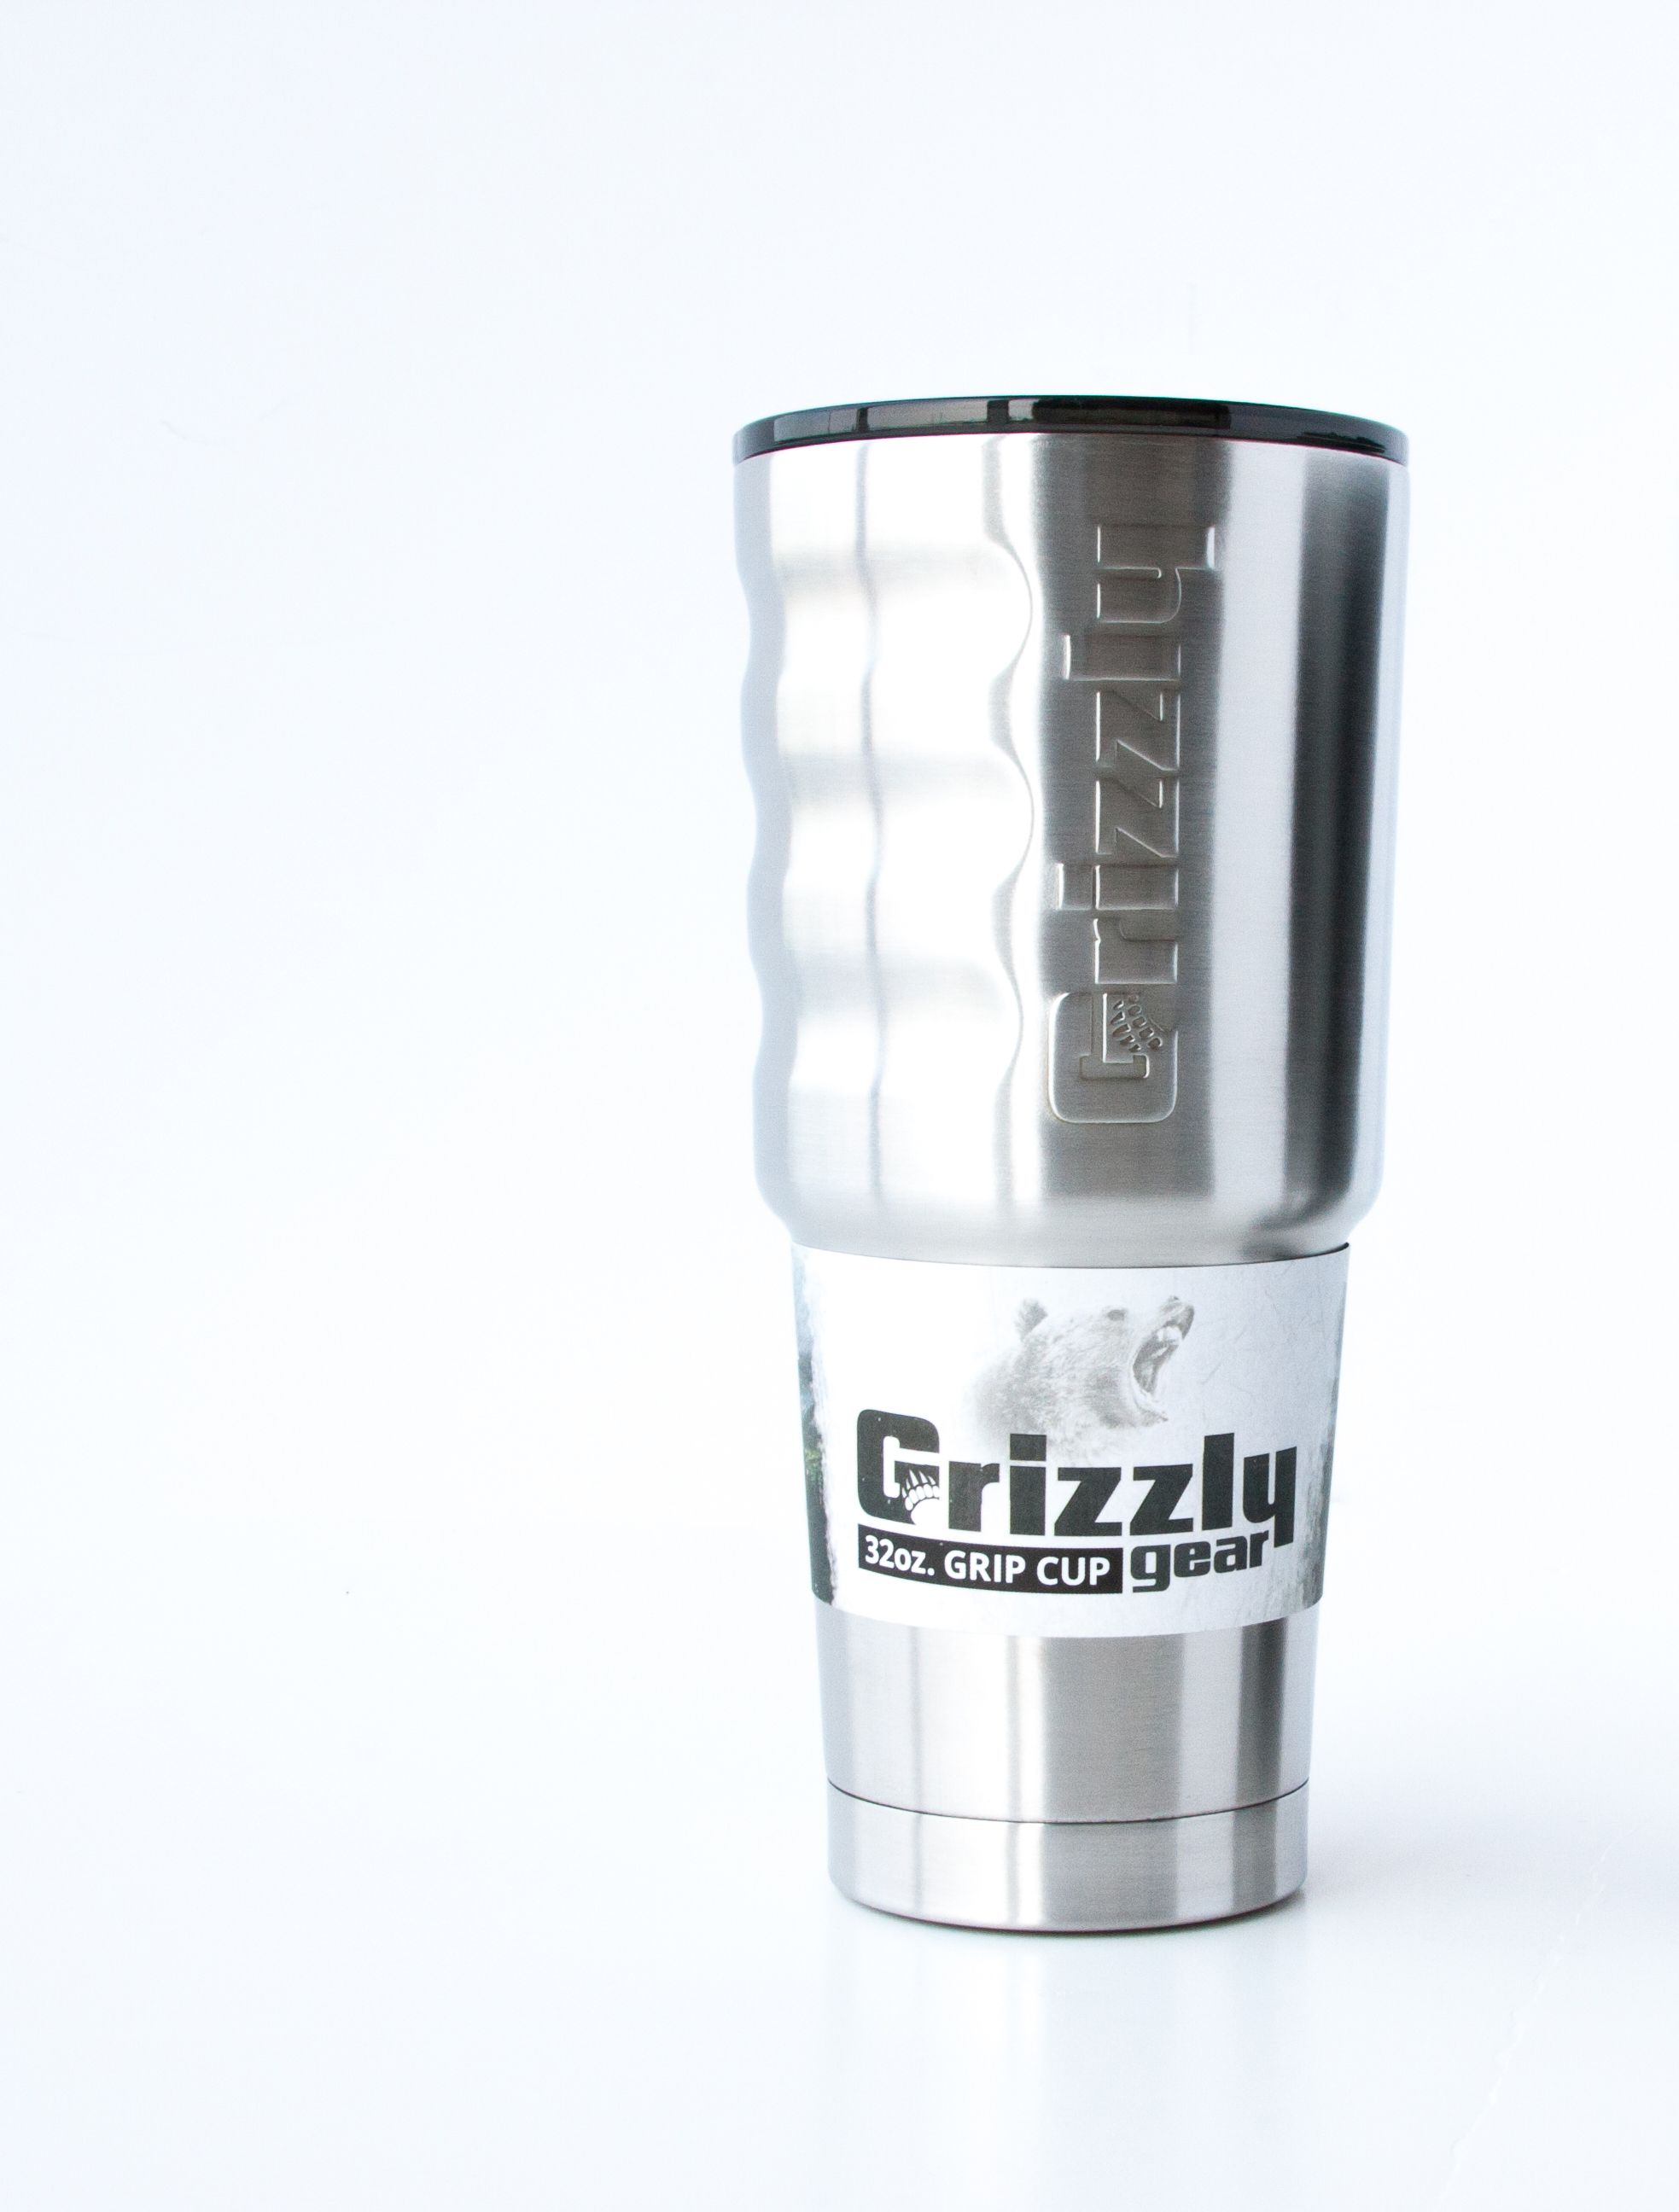 Grizzly 32 Oz. GG Cup – Stainless Steel image